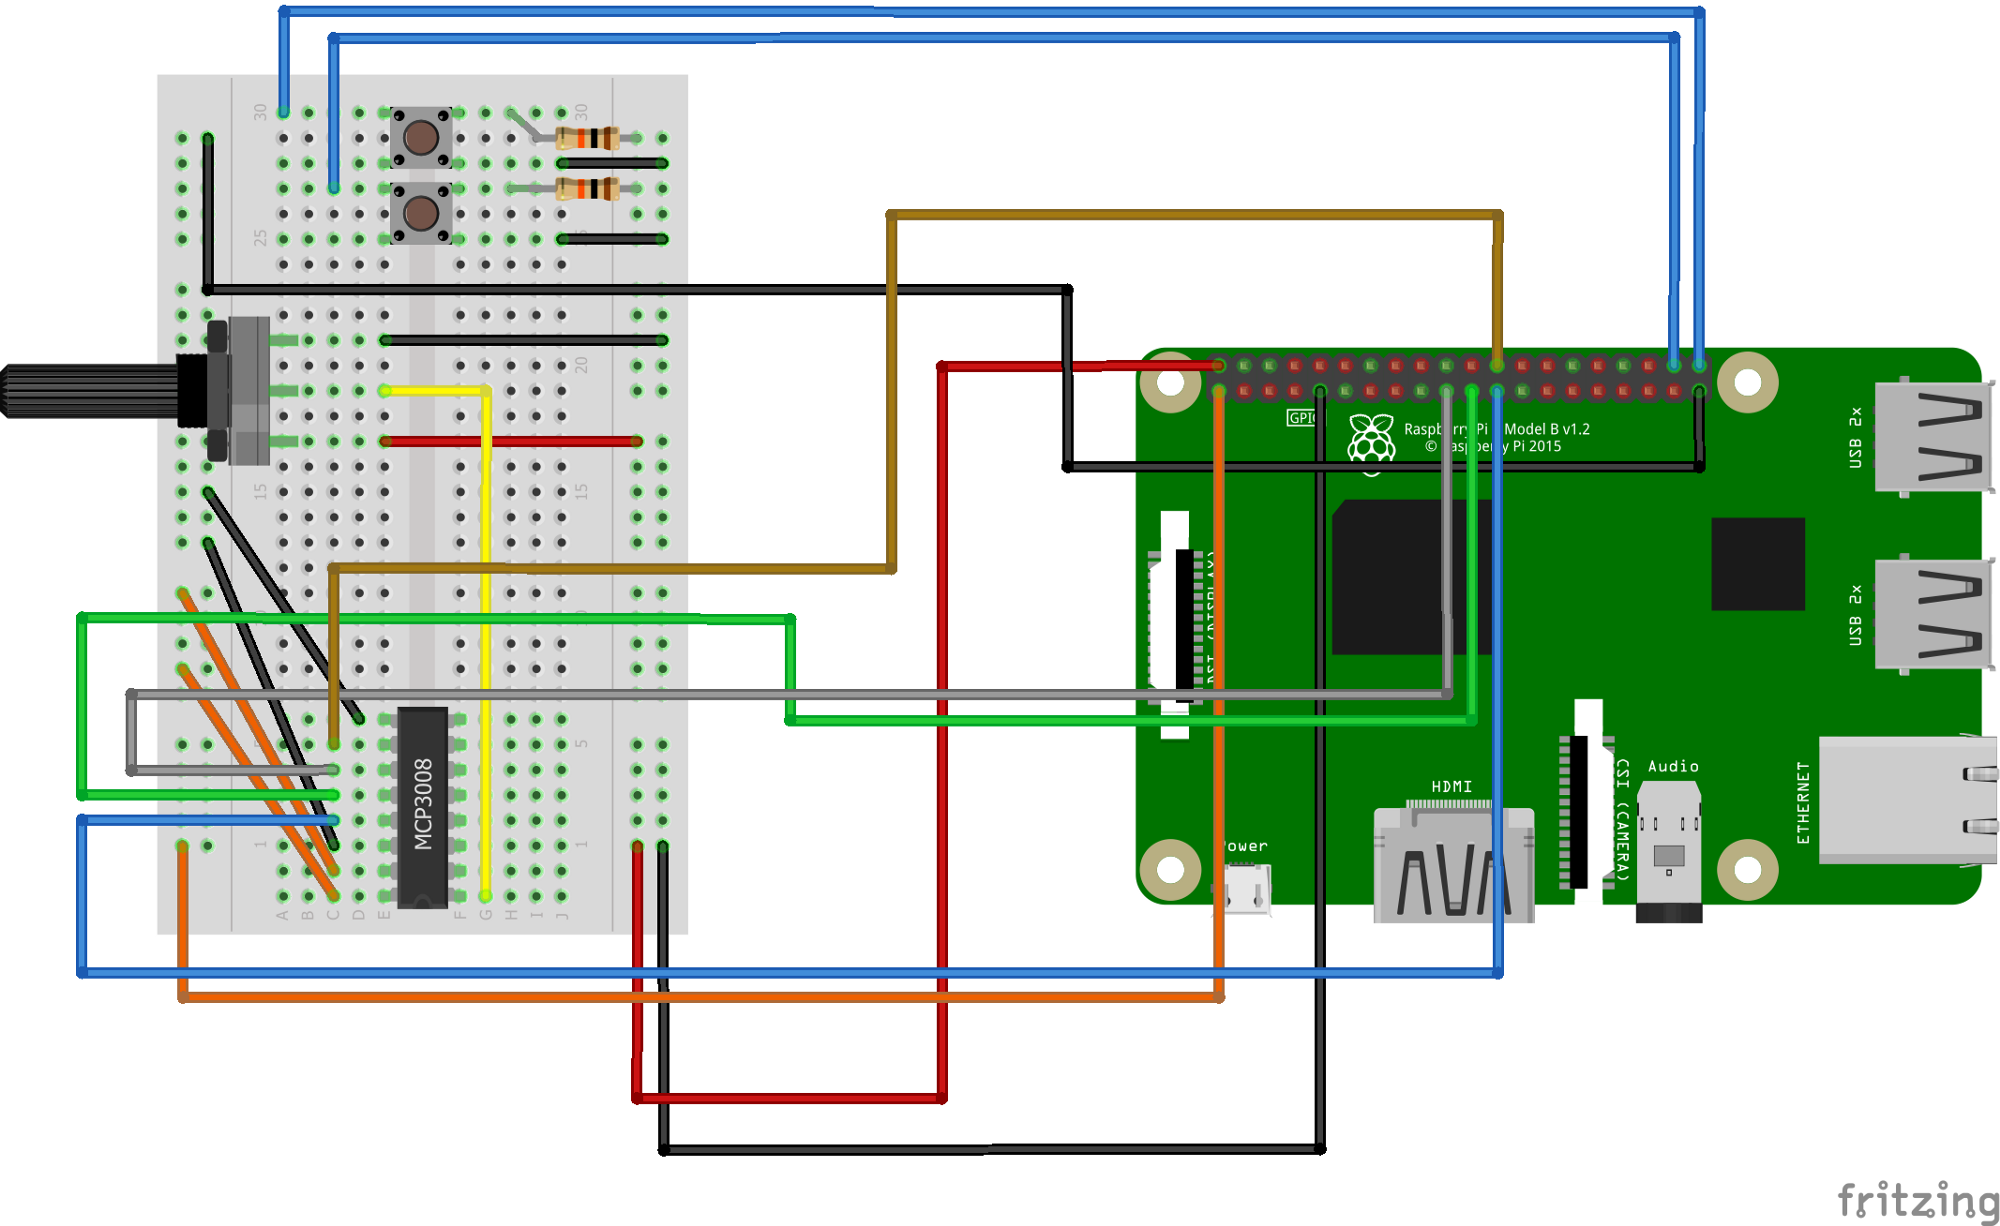 Building a distributed MIDI Controller with Android Things and